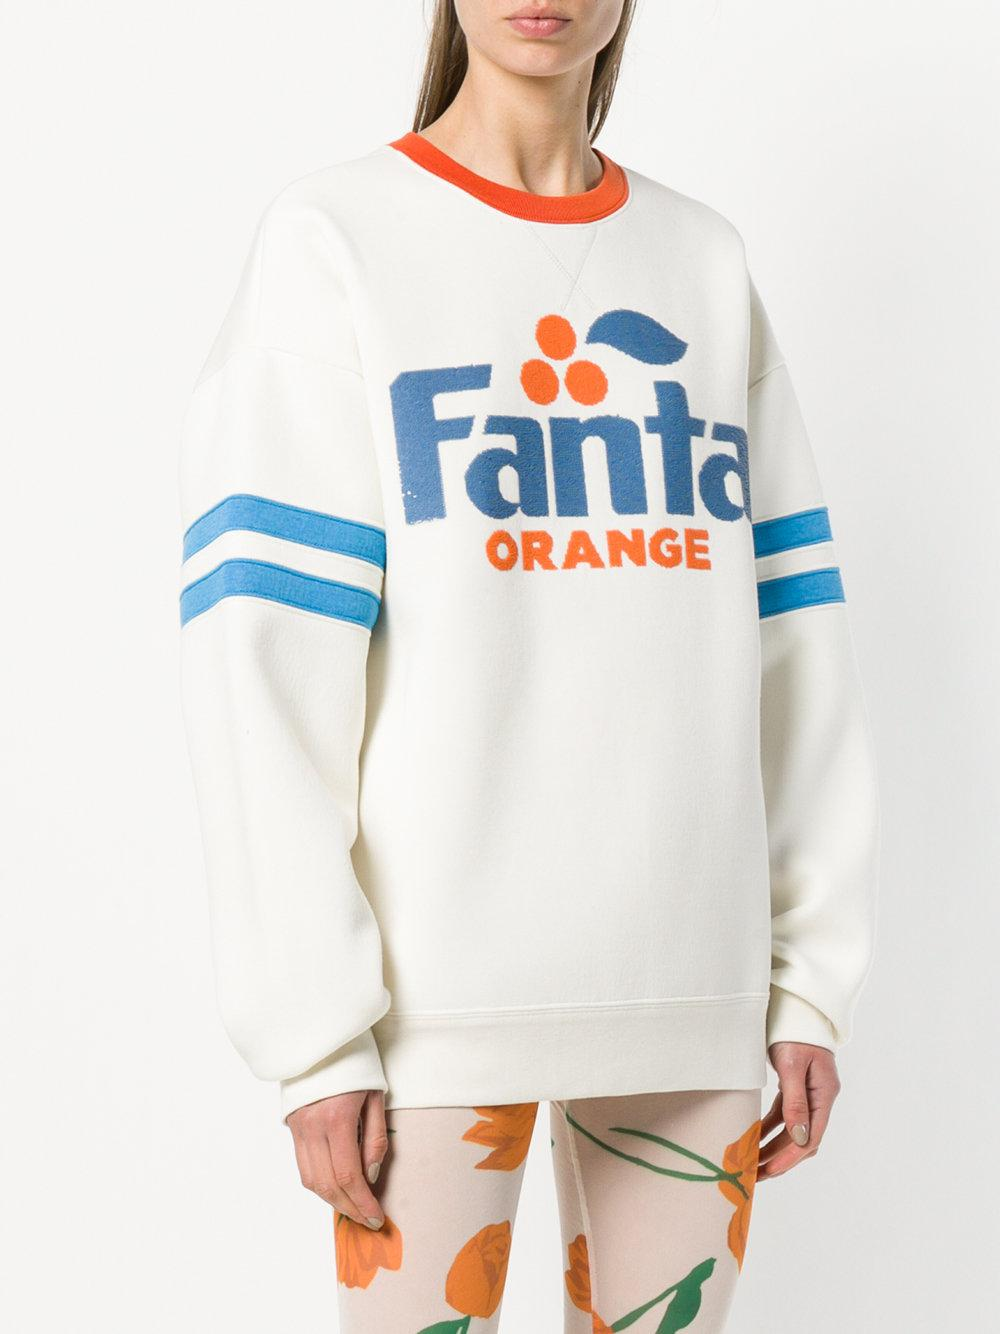 marc-jacobs-White-Fanta-Sweatshirt.jpeg